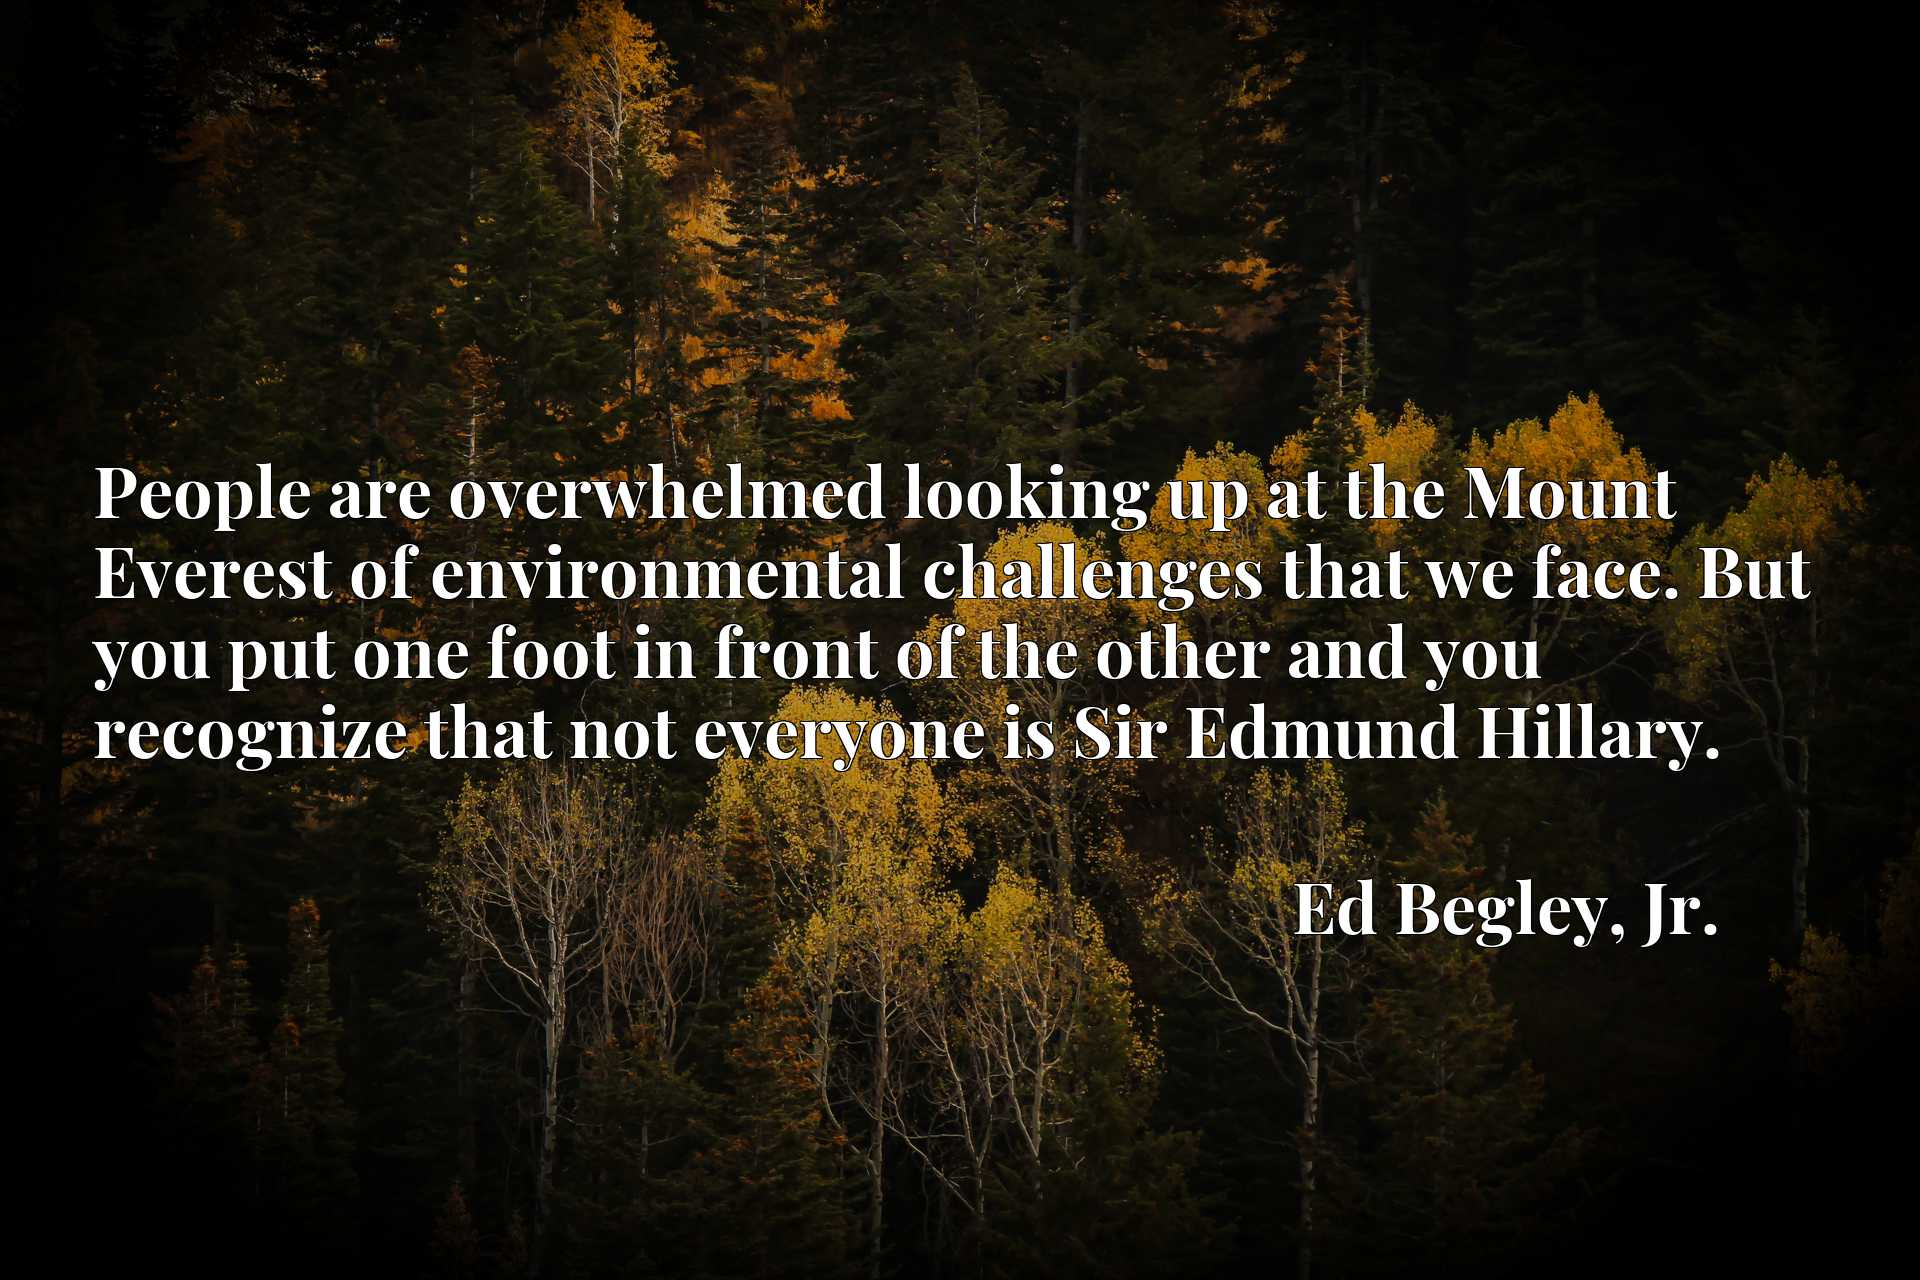 People are overwhelmed looking up at the Mount Everest of environmental challenges that we face. But you put one foot in front of the other and you recognize that not everyone is Sir Edmund Hillary.